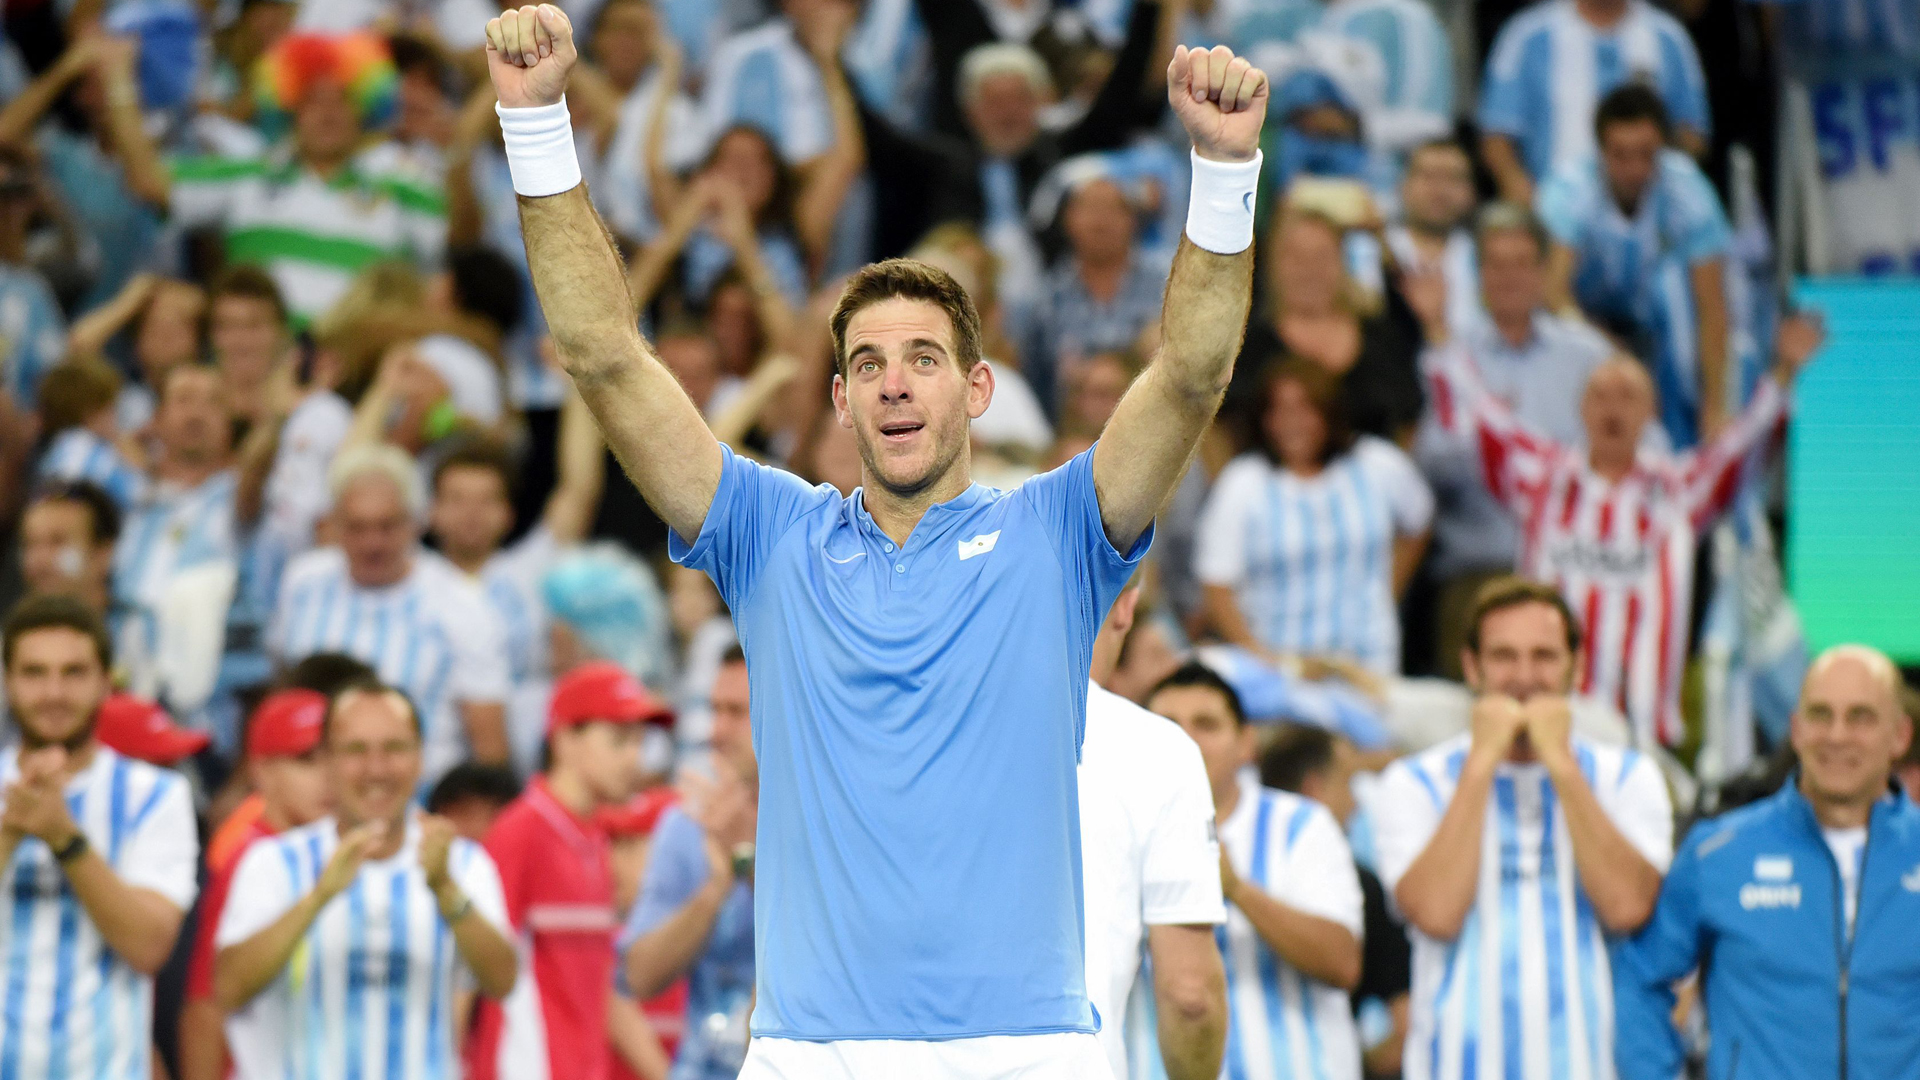 Juan Martin del Potro confirms he will miss 2017 Australian Open